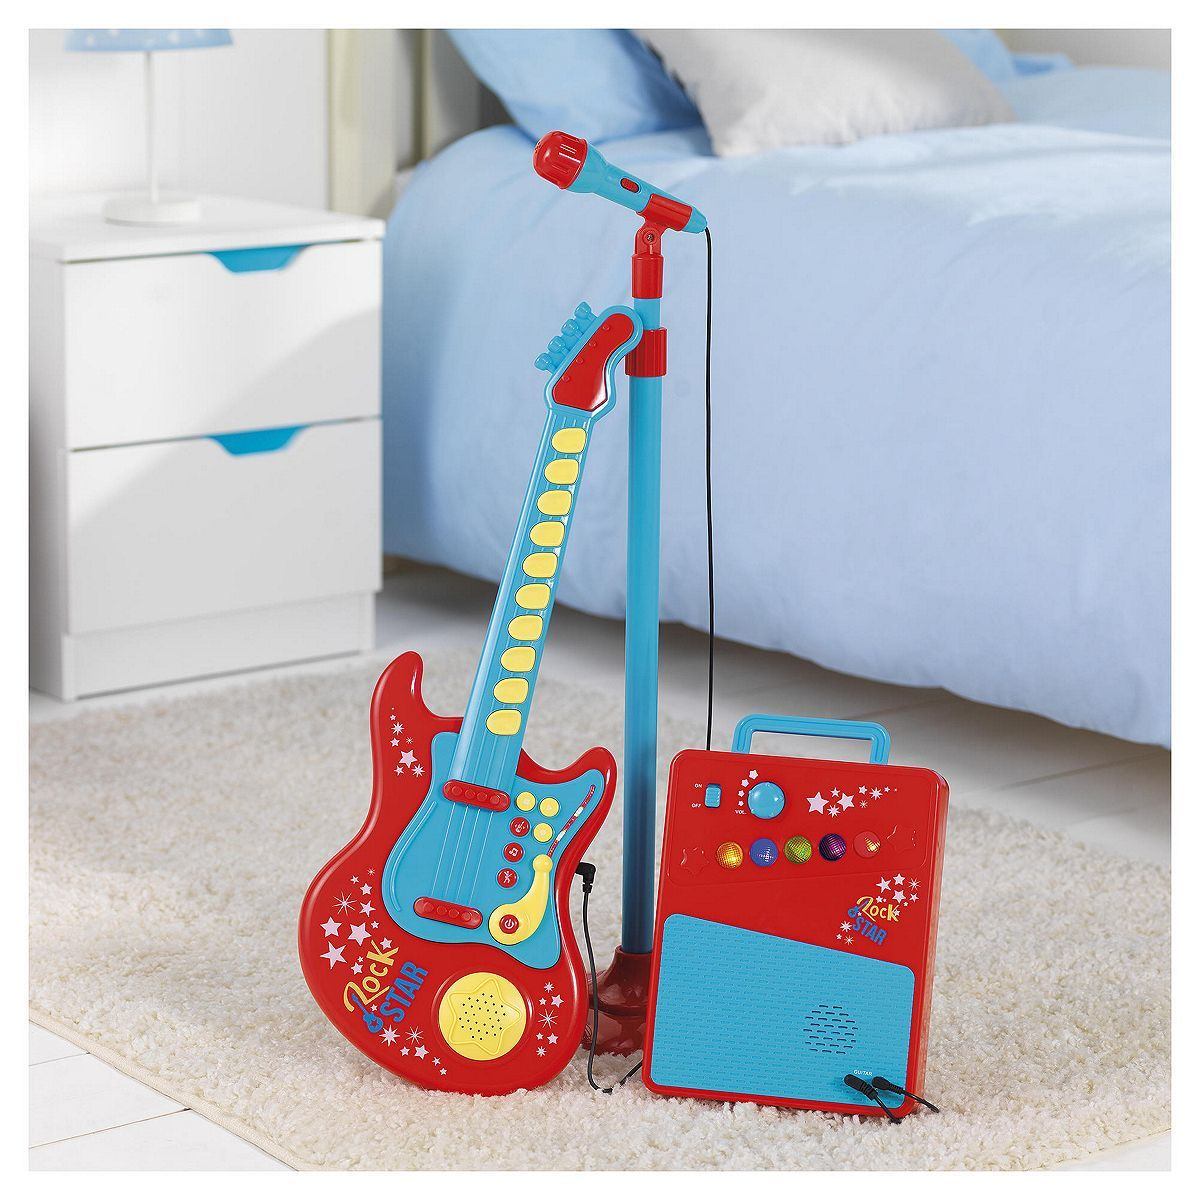 Tesco direct  Carousel Red Rock Star Guitar   toys   Pinterest ... 742372b527